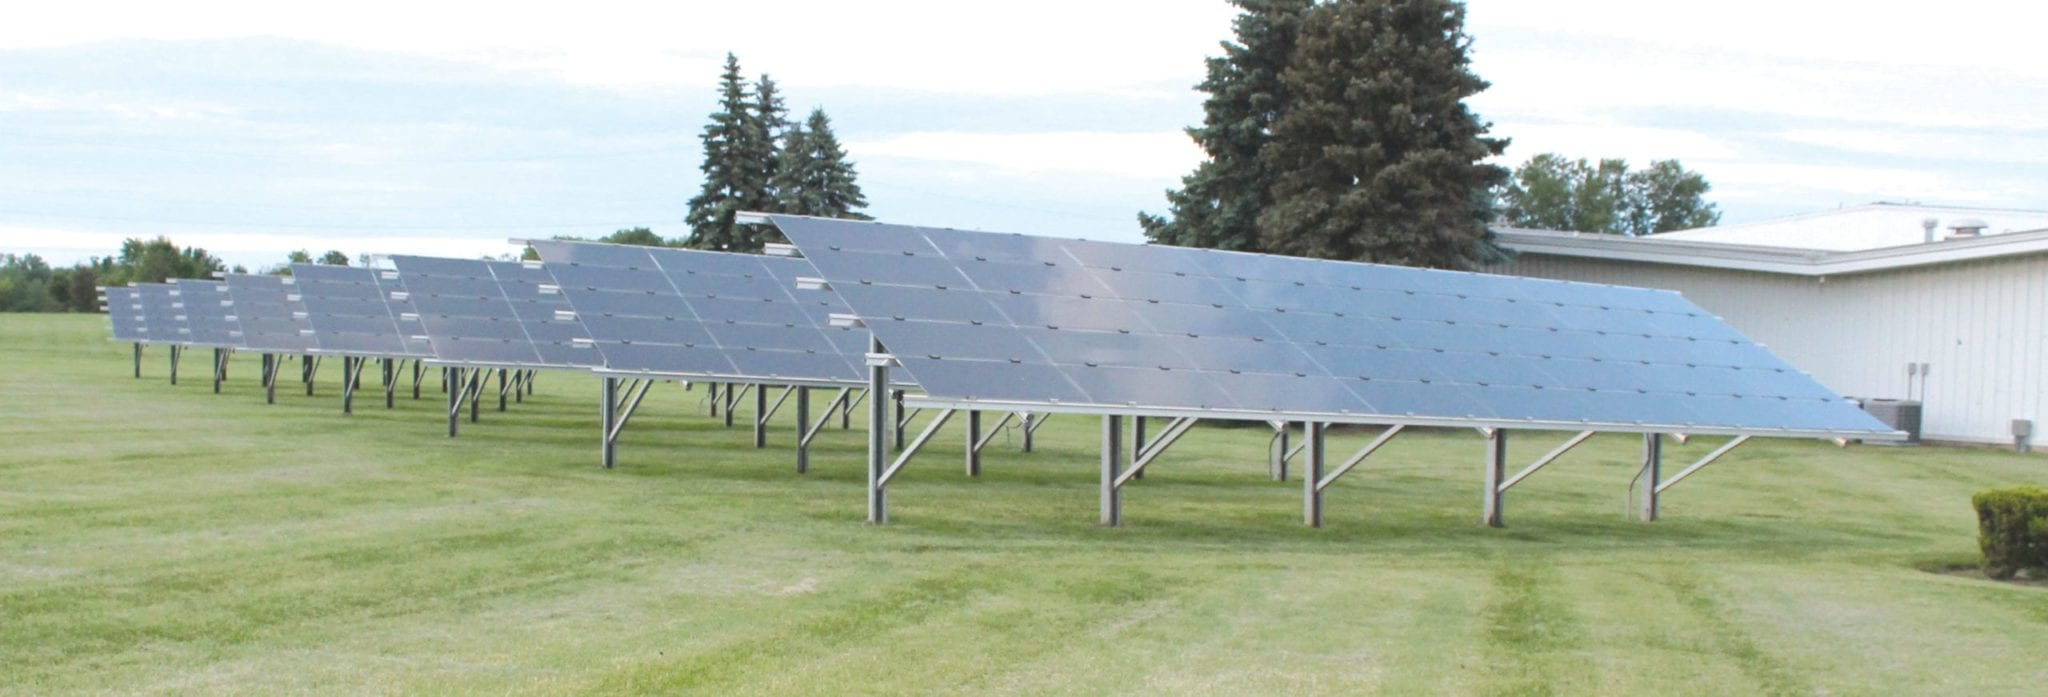 Solar savings coming to Clay